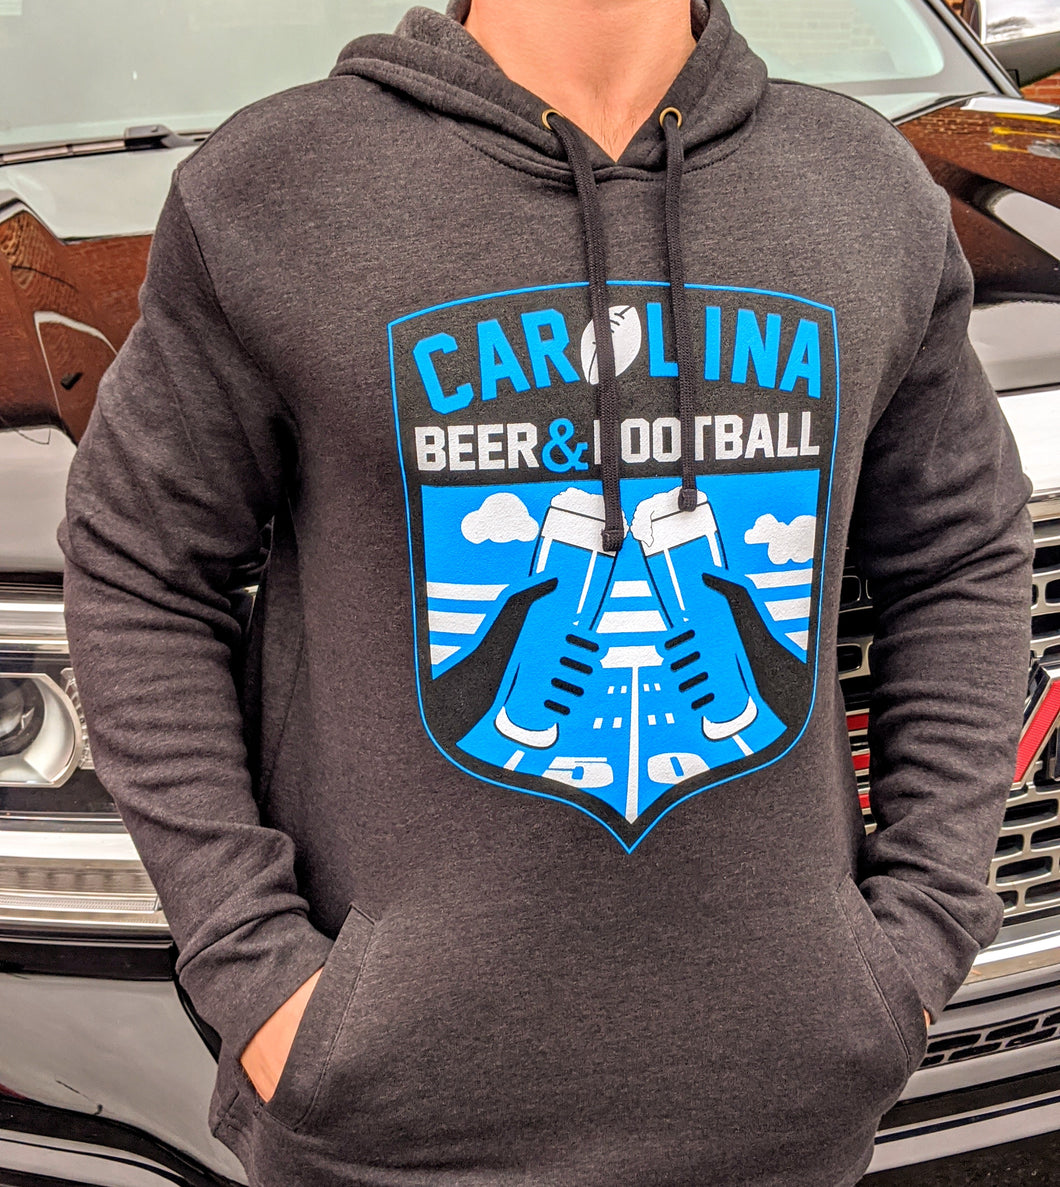 Carolina Beer & Football Hoodie